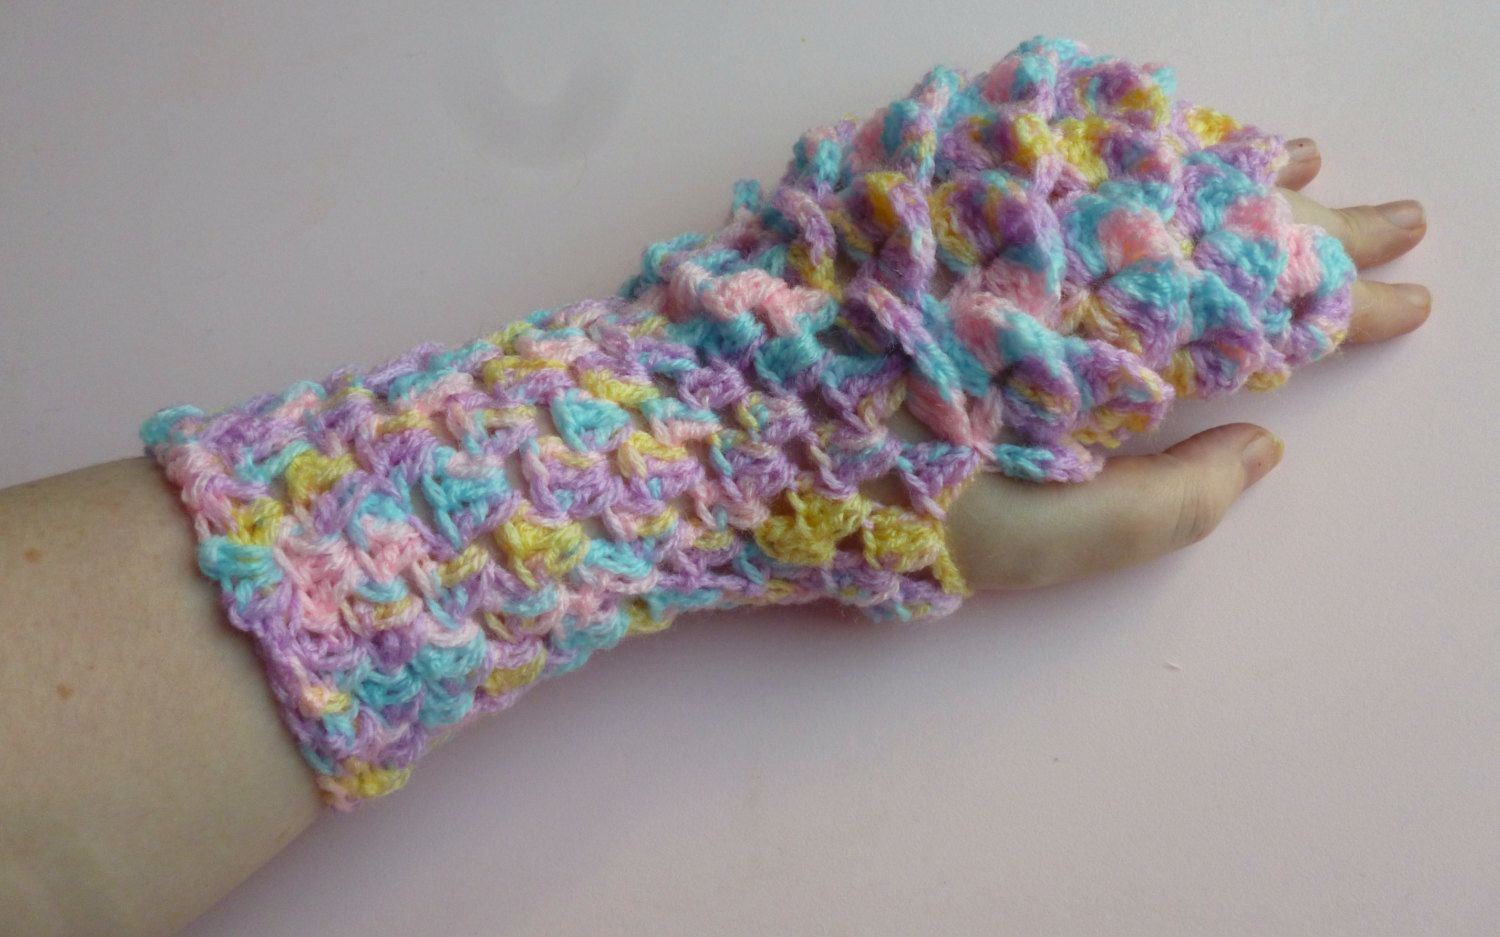 dragon scale gloves, mermaid scale gloves, fantasy gloves, fingerless gloves, scale gloves, crochet gloves, mermaid gloves, pastel gloves by UniquelySam on Etsy